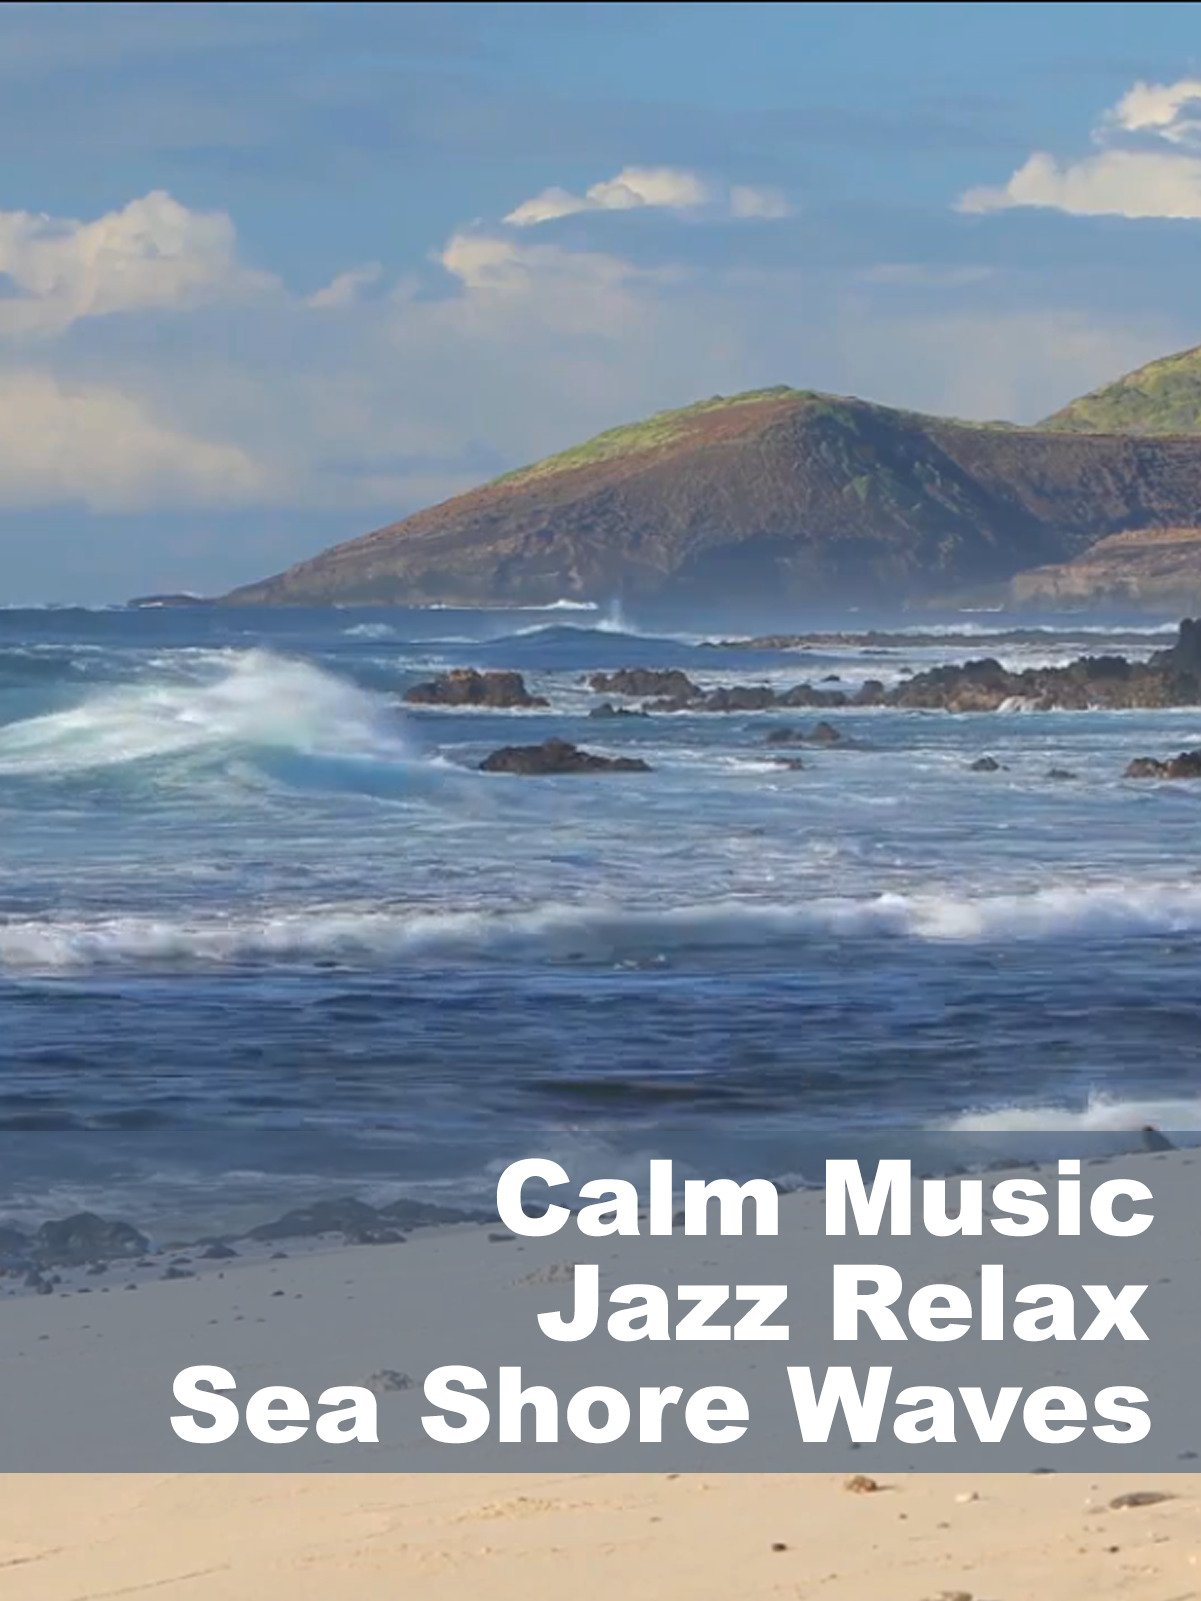 Calm Music Jazz Relax Sea Shore Waves